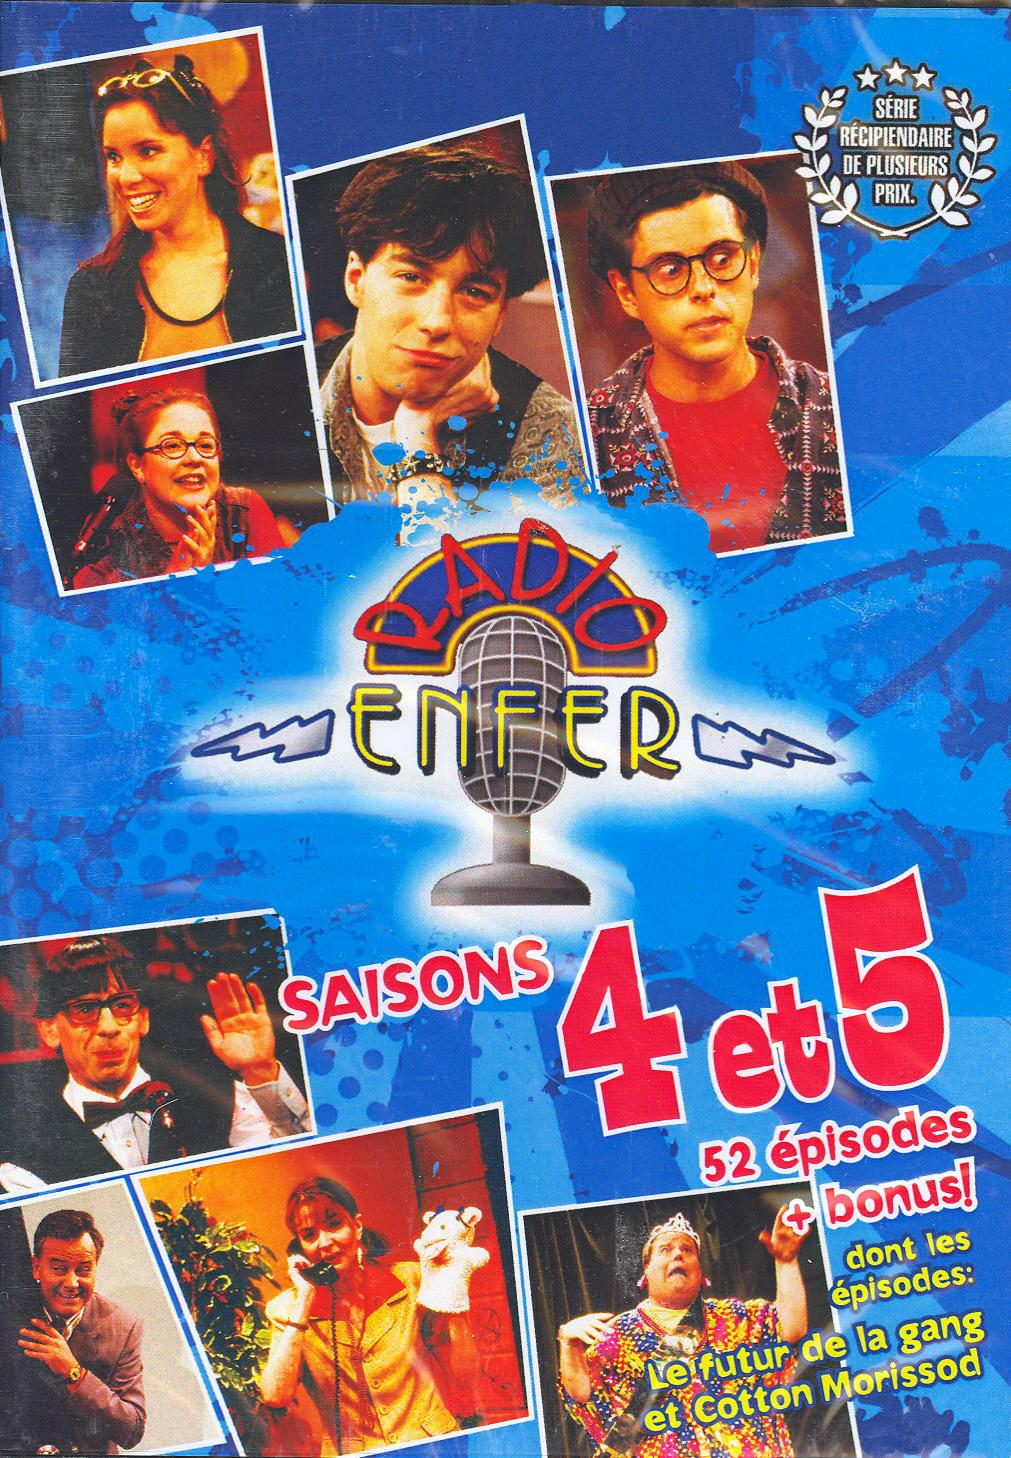 Radio Enfer – Saison 5